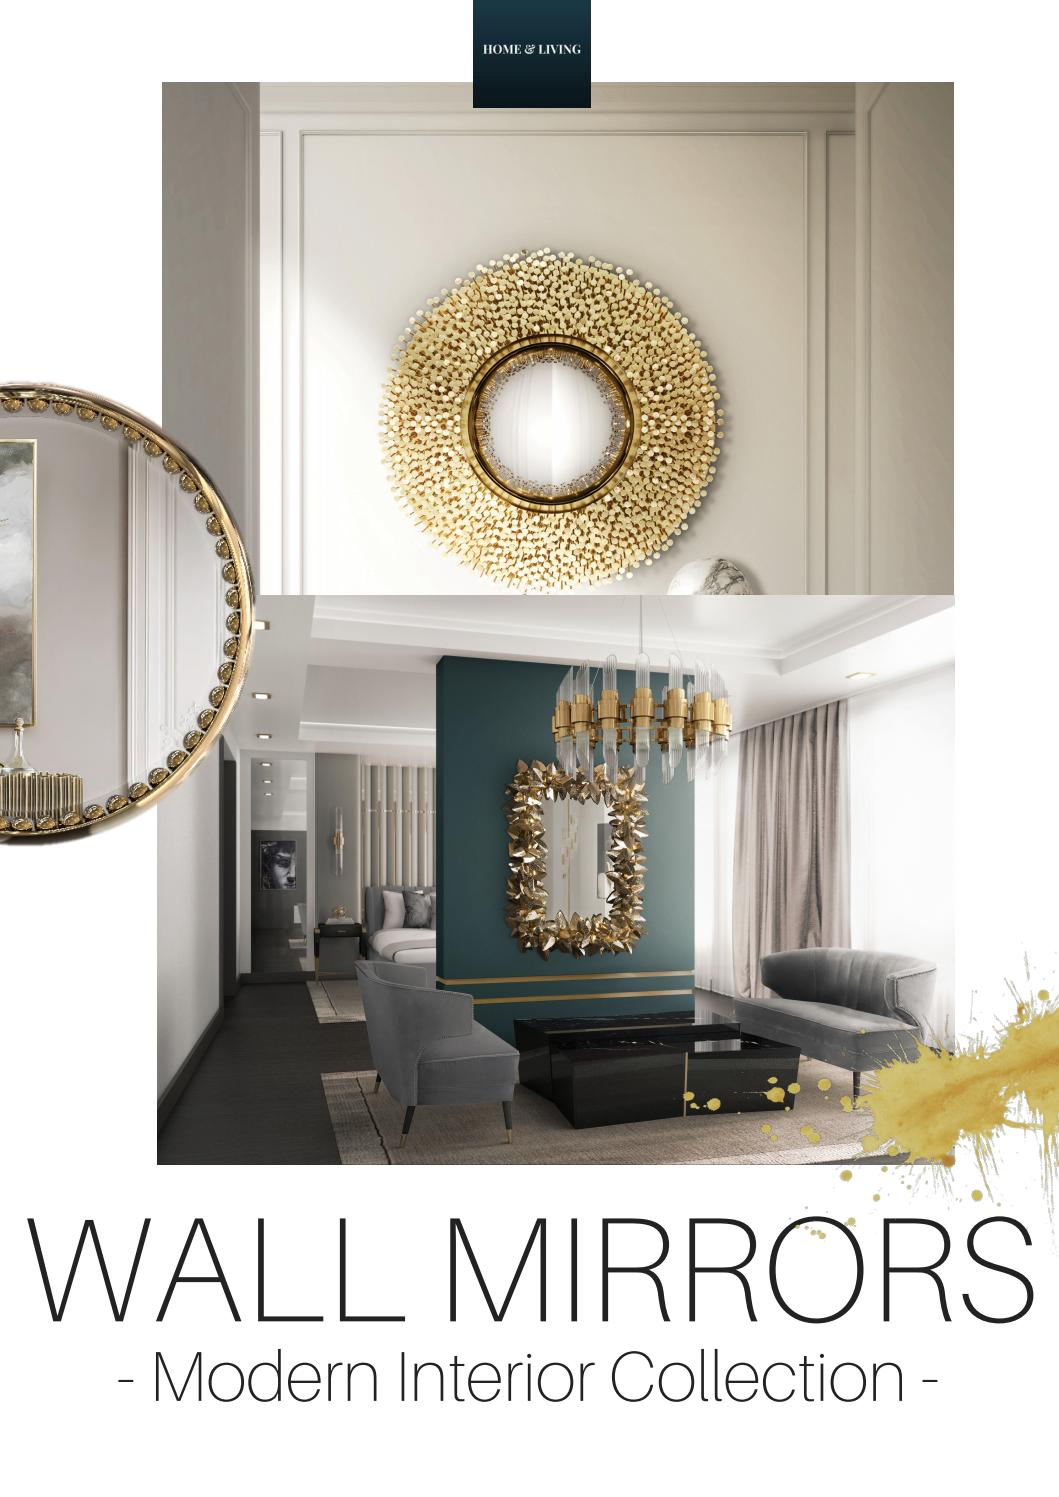 Modern Interior Collection Of Wall Mirrors By Home Living Magazines Issuu